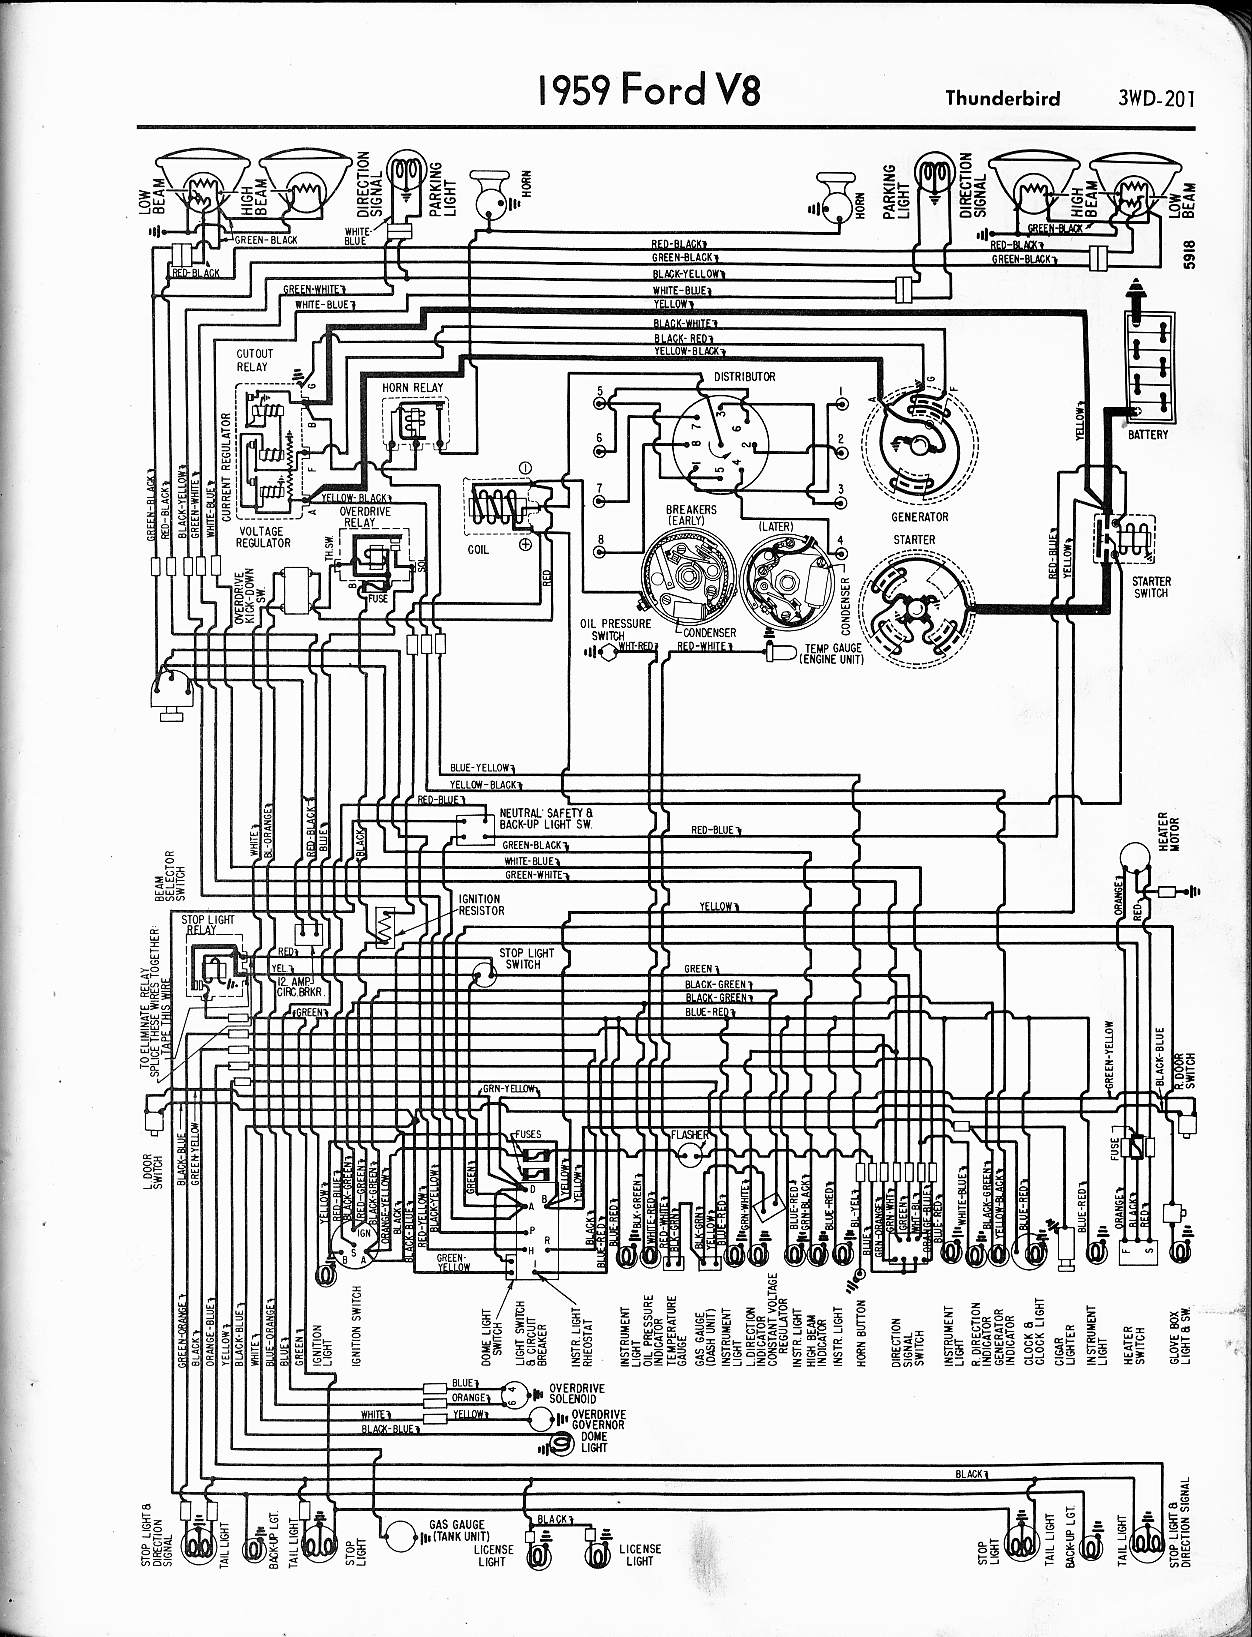 1970 thunderbird instrument cluster diagram wiring schematic 1970 trans am wiring diagram 57 65 ford wiring diagrams 1970 trans am wiring diagram 1970 thunderbird instrument cluster diagram wiring schematic